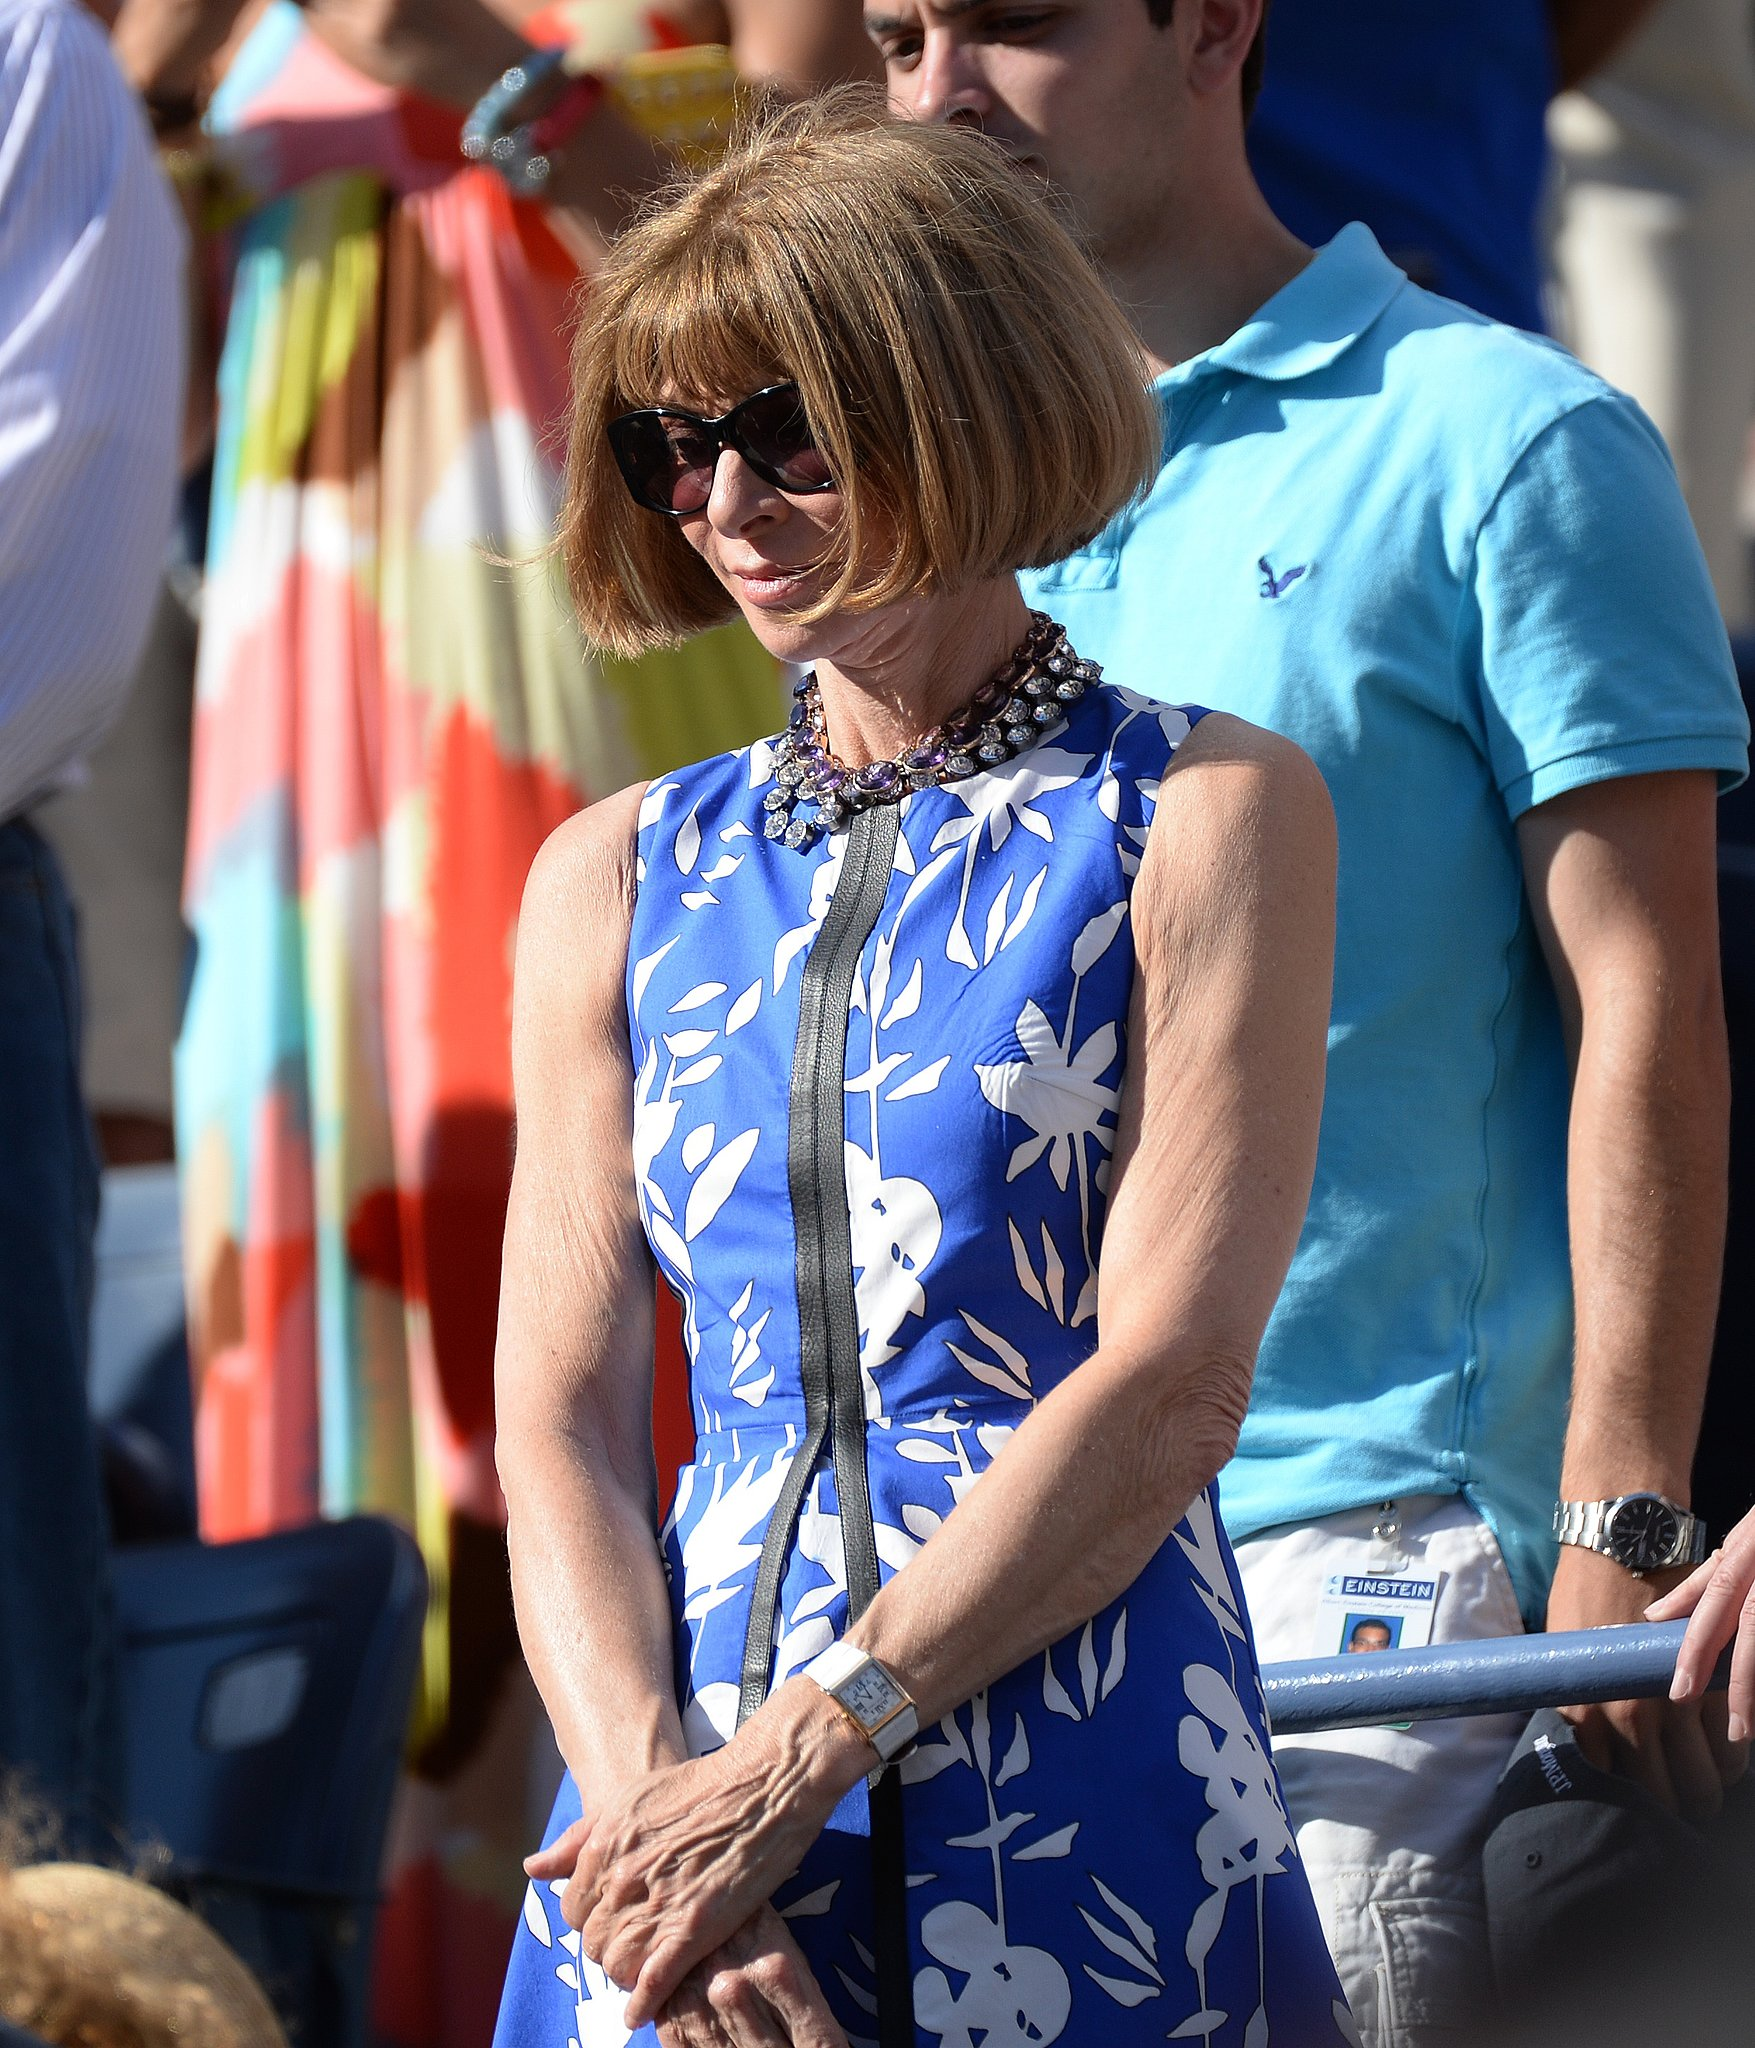 Anna Wintour took a break from New York Fashion Week to take in tennis at the US Open in a blue printed dress. She didn't even bother to change after attending Victoria Beckham's Spring 2014 show, which took place just hours earlier.